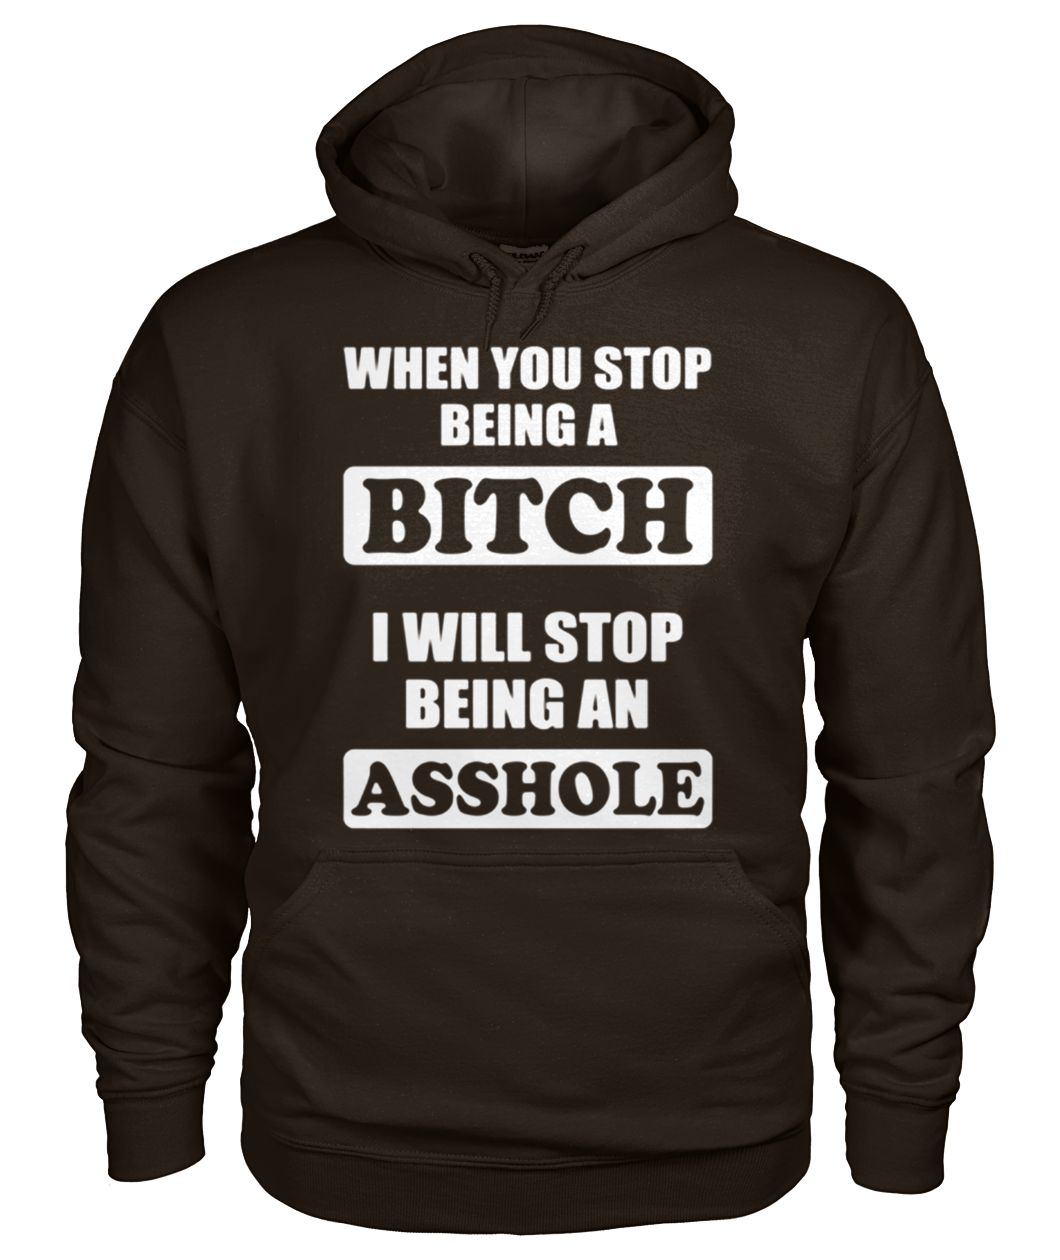 When you stop being a bitch I will stop being an asshole gildan hoodie